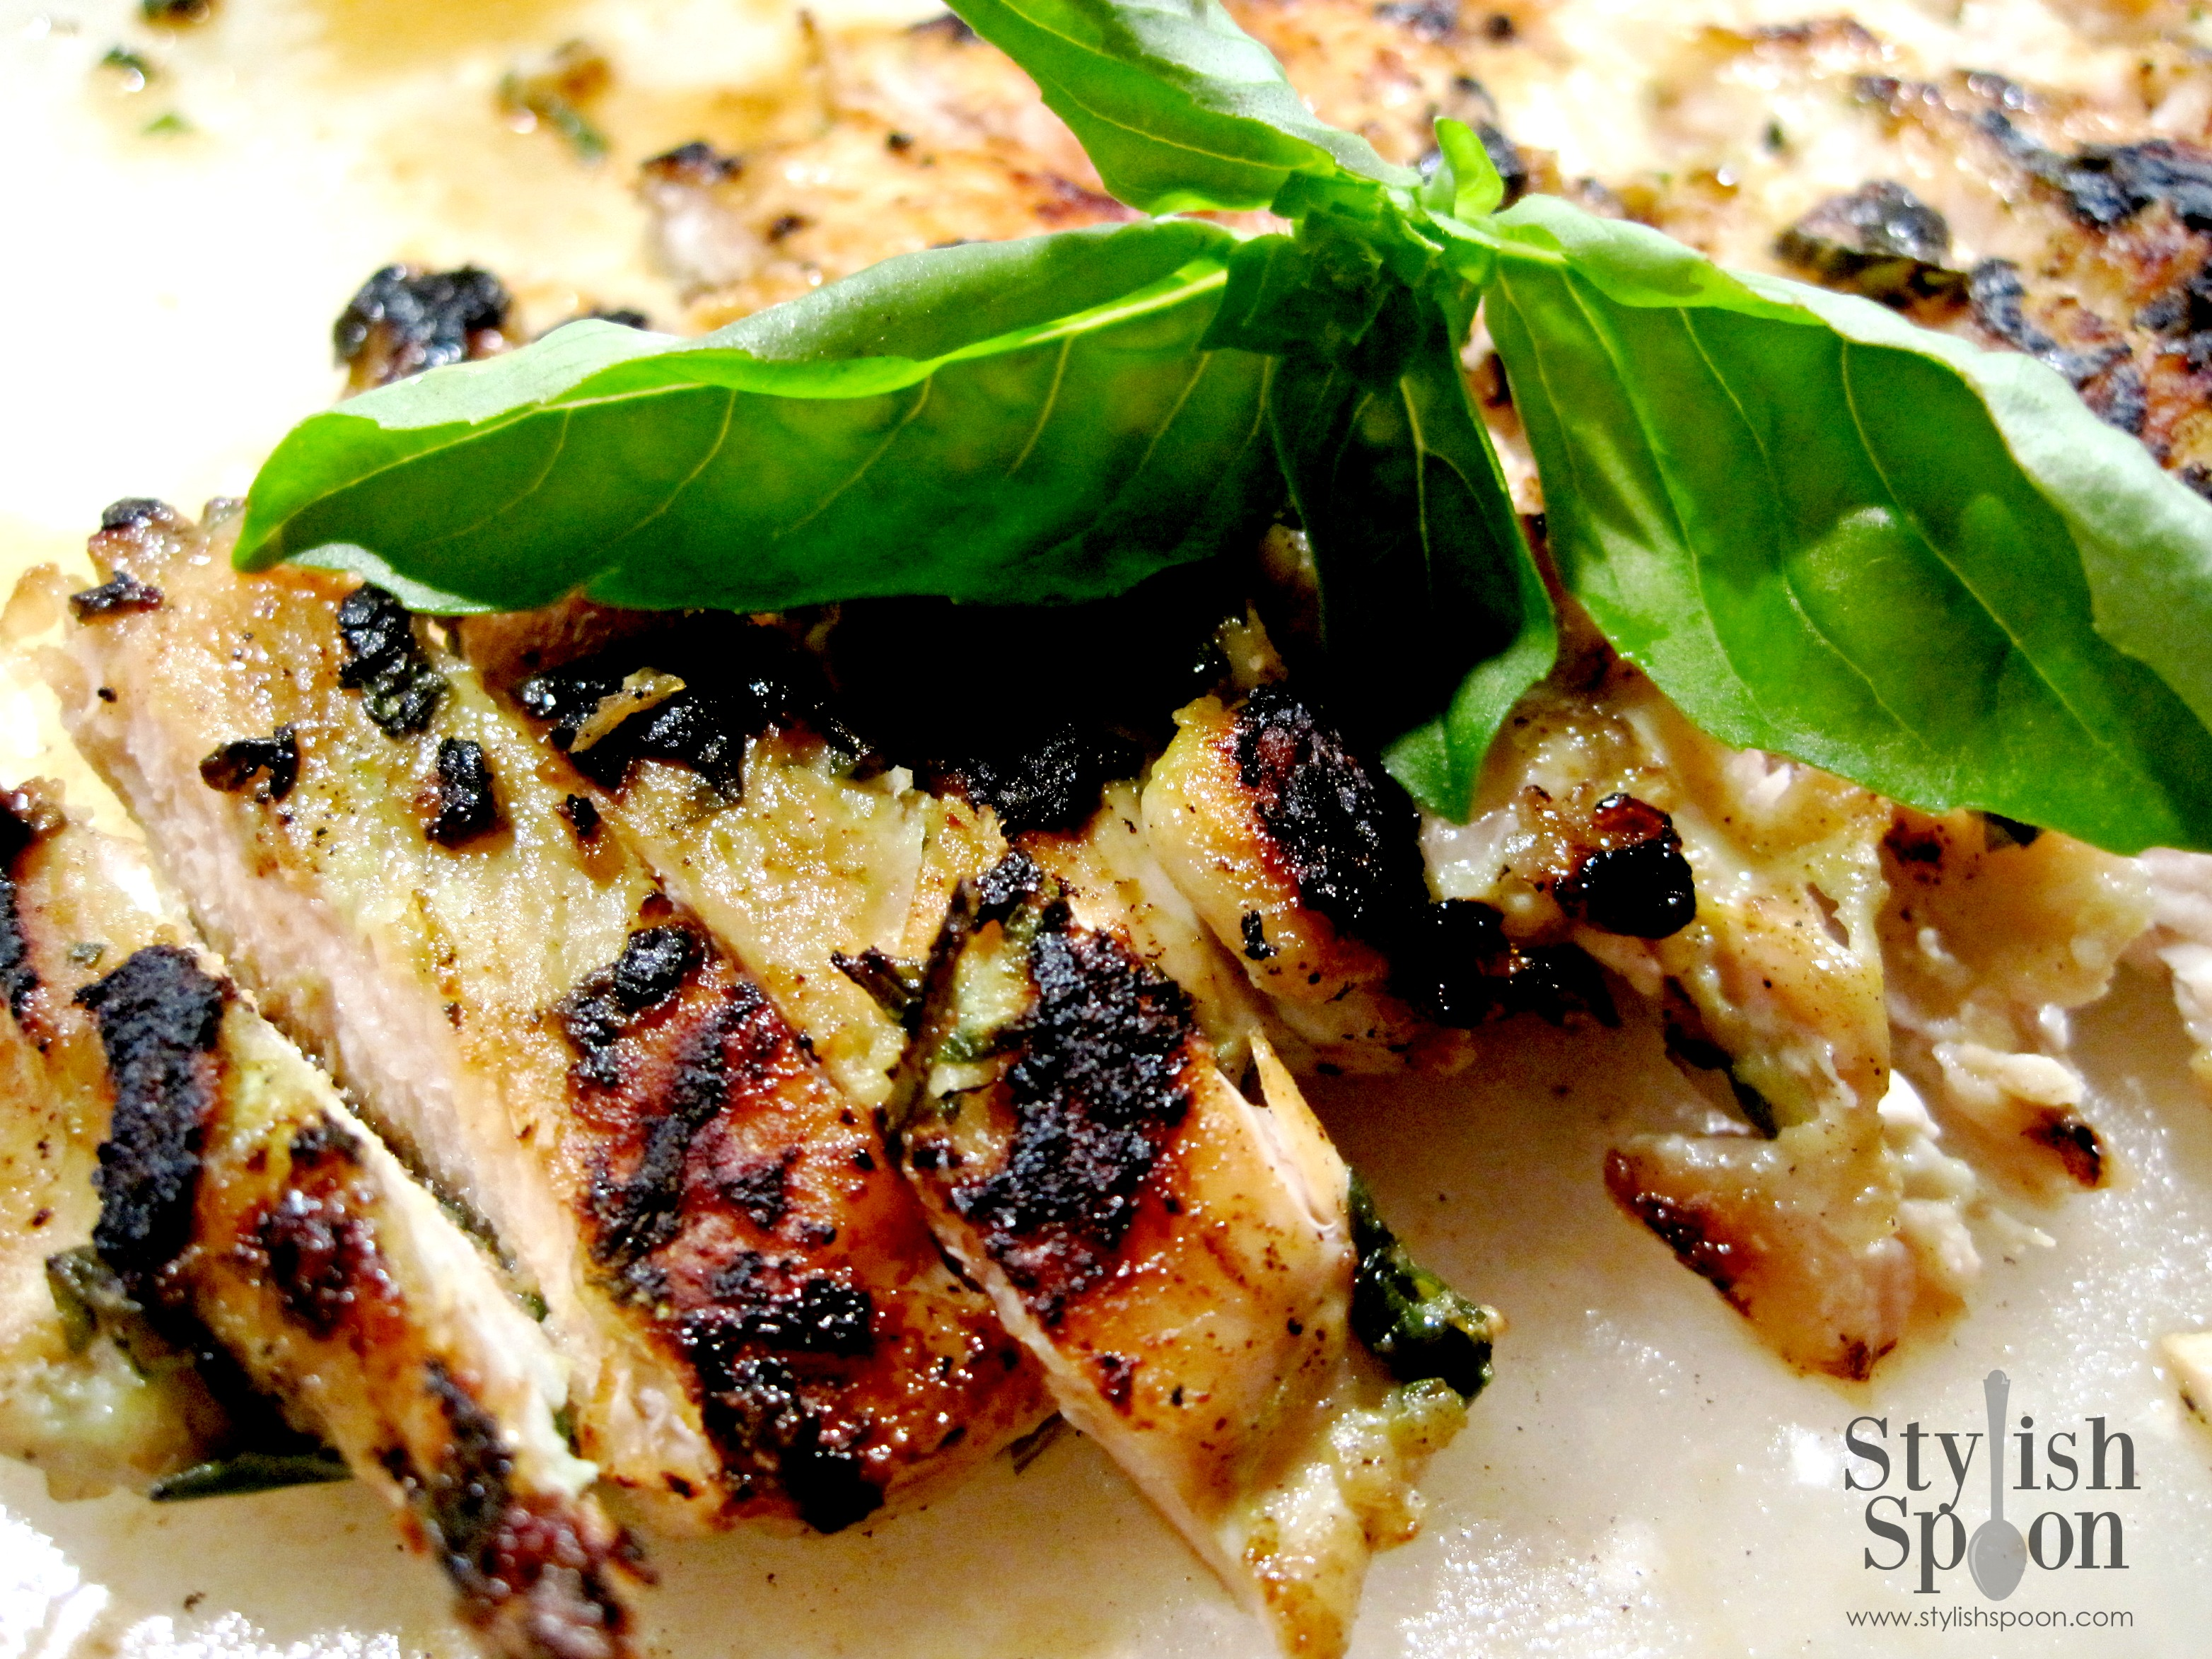 Recipe :: Basil & Garlic Rubbed Grilled Chicken - Stylish Spoon